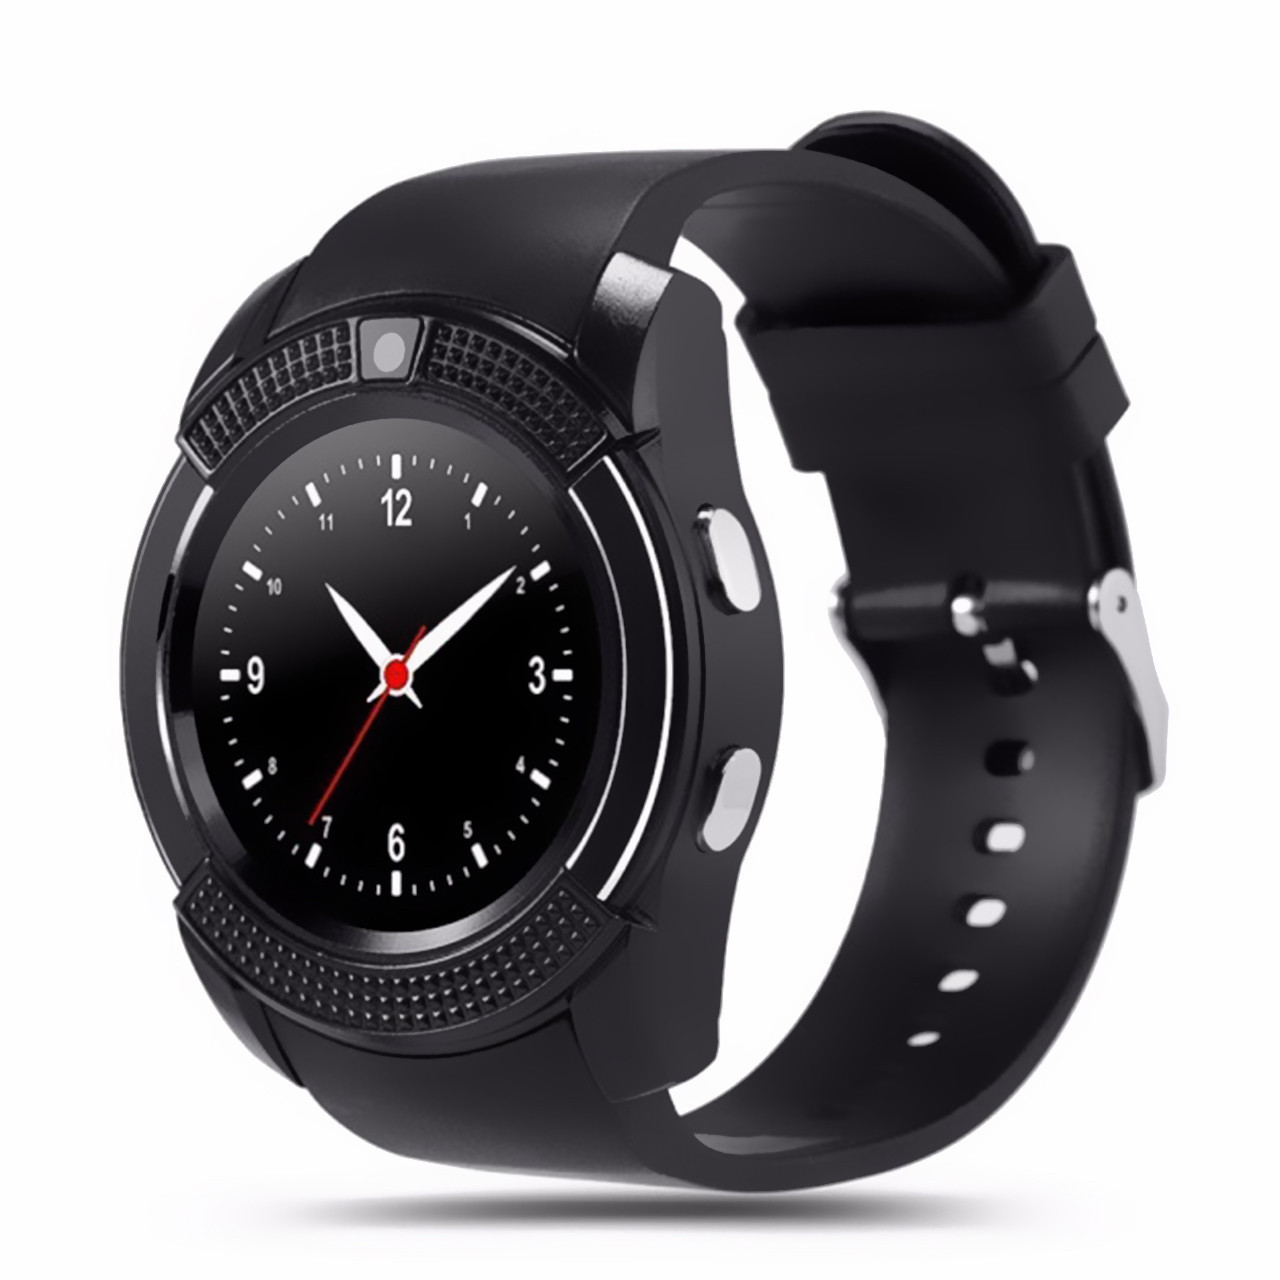 Смарт-часы UWatch V8 Black (2806-7618)